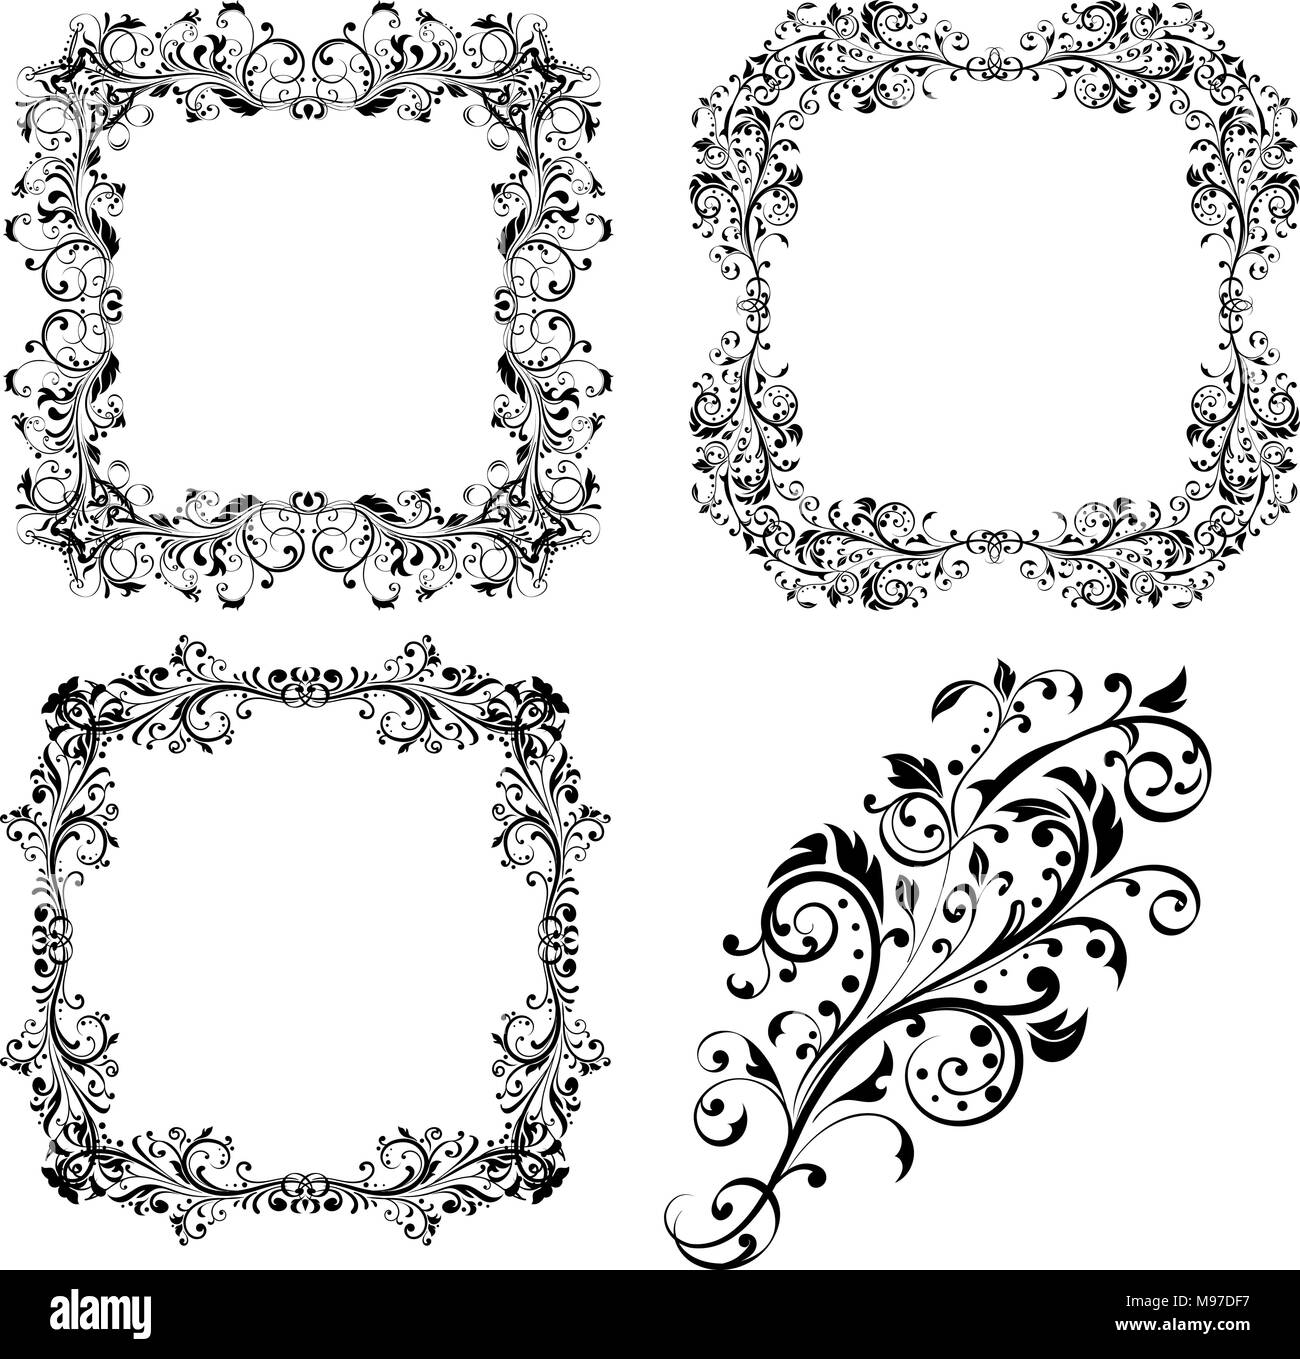 Floral decorative frames and ornament Stock Vector Art ...